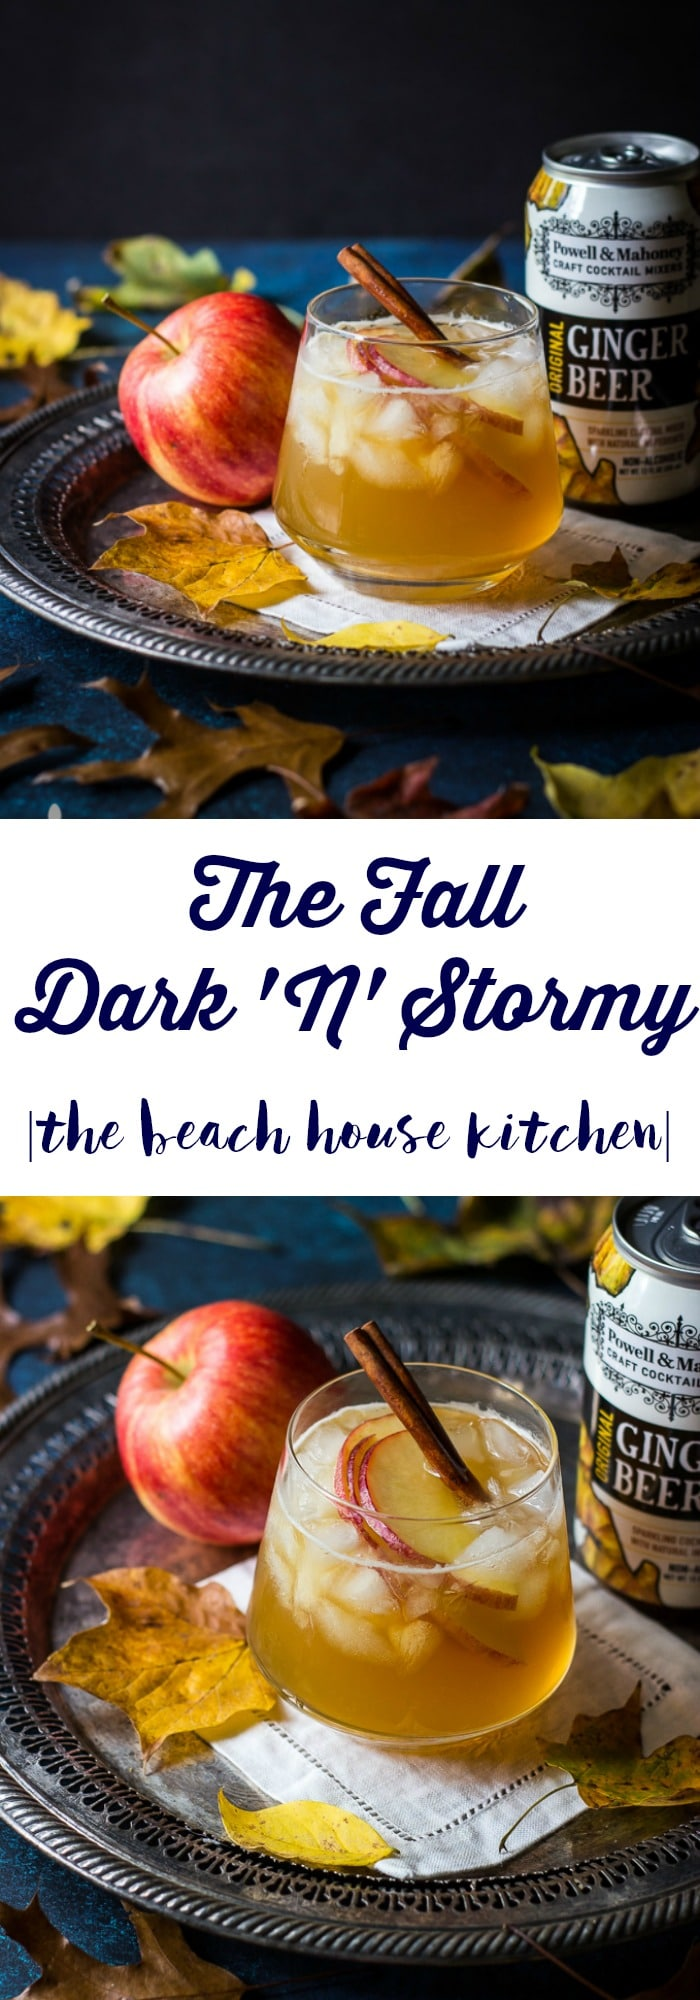 The Fall Dark and Stormy